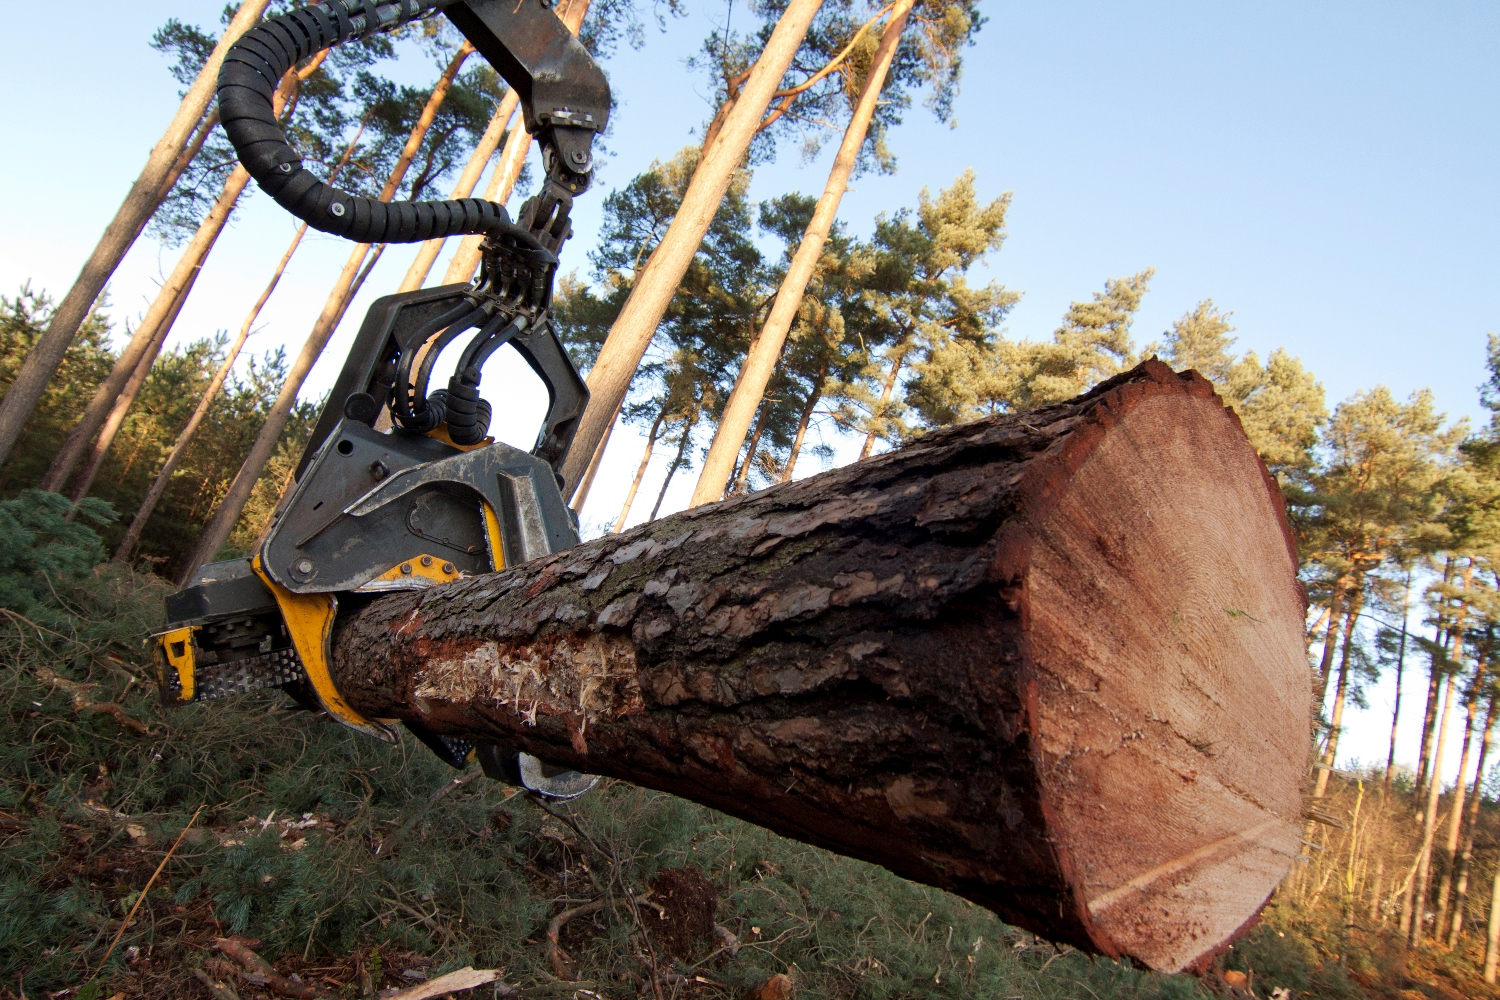 A TRUSTED SERVICE FOR TREE FELLING IN CARDIFF